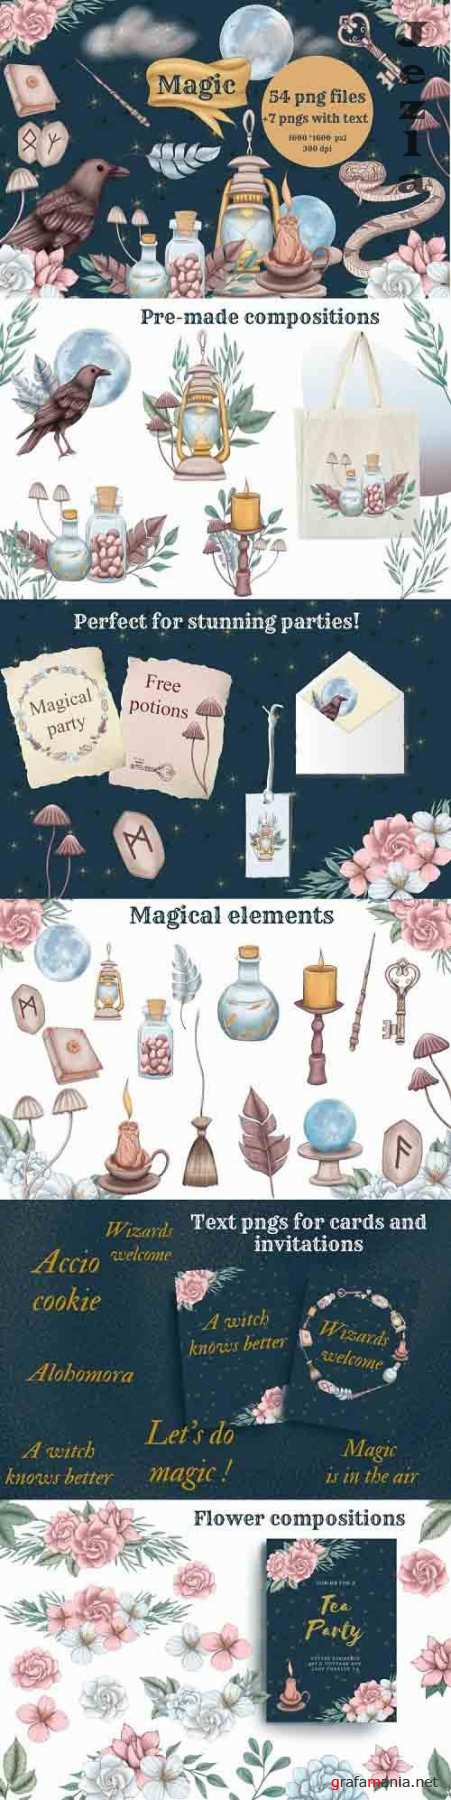 Wizard supples clipart, magic clip art, wand png, broom png - 1248747